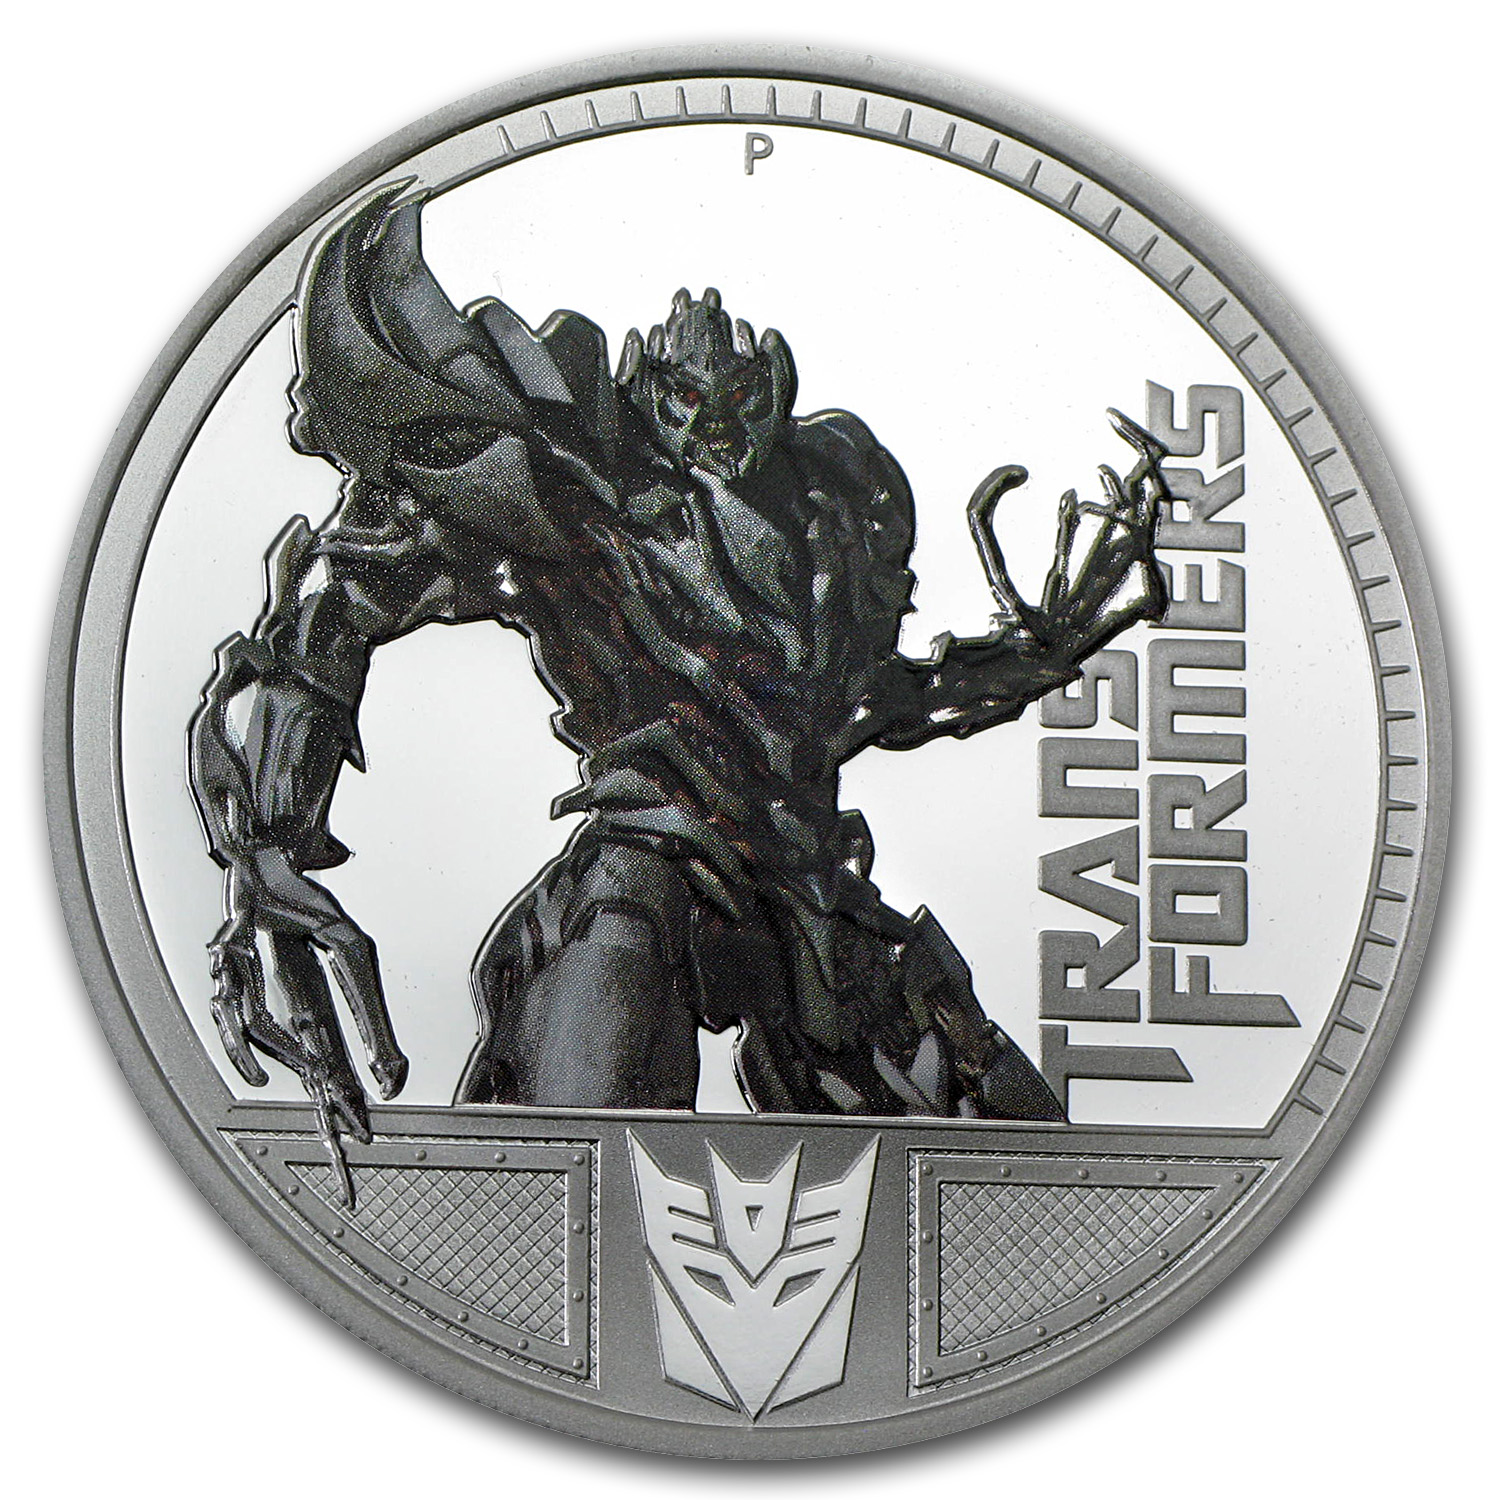 2009 1 oz Silver 1st Transformers Series Proof (Megatron)